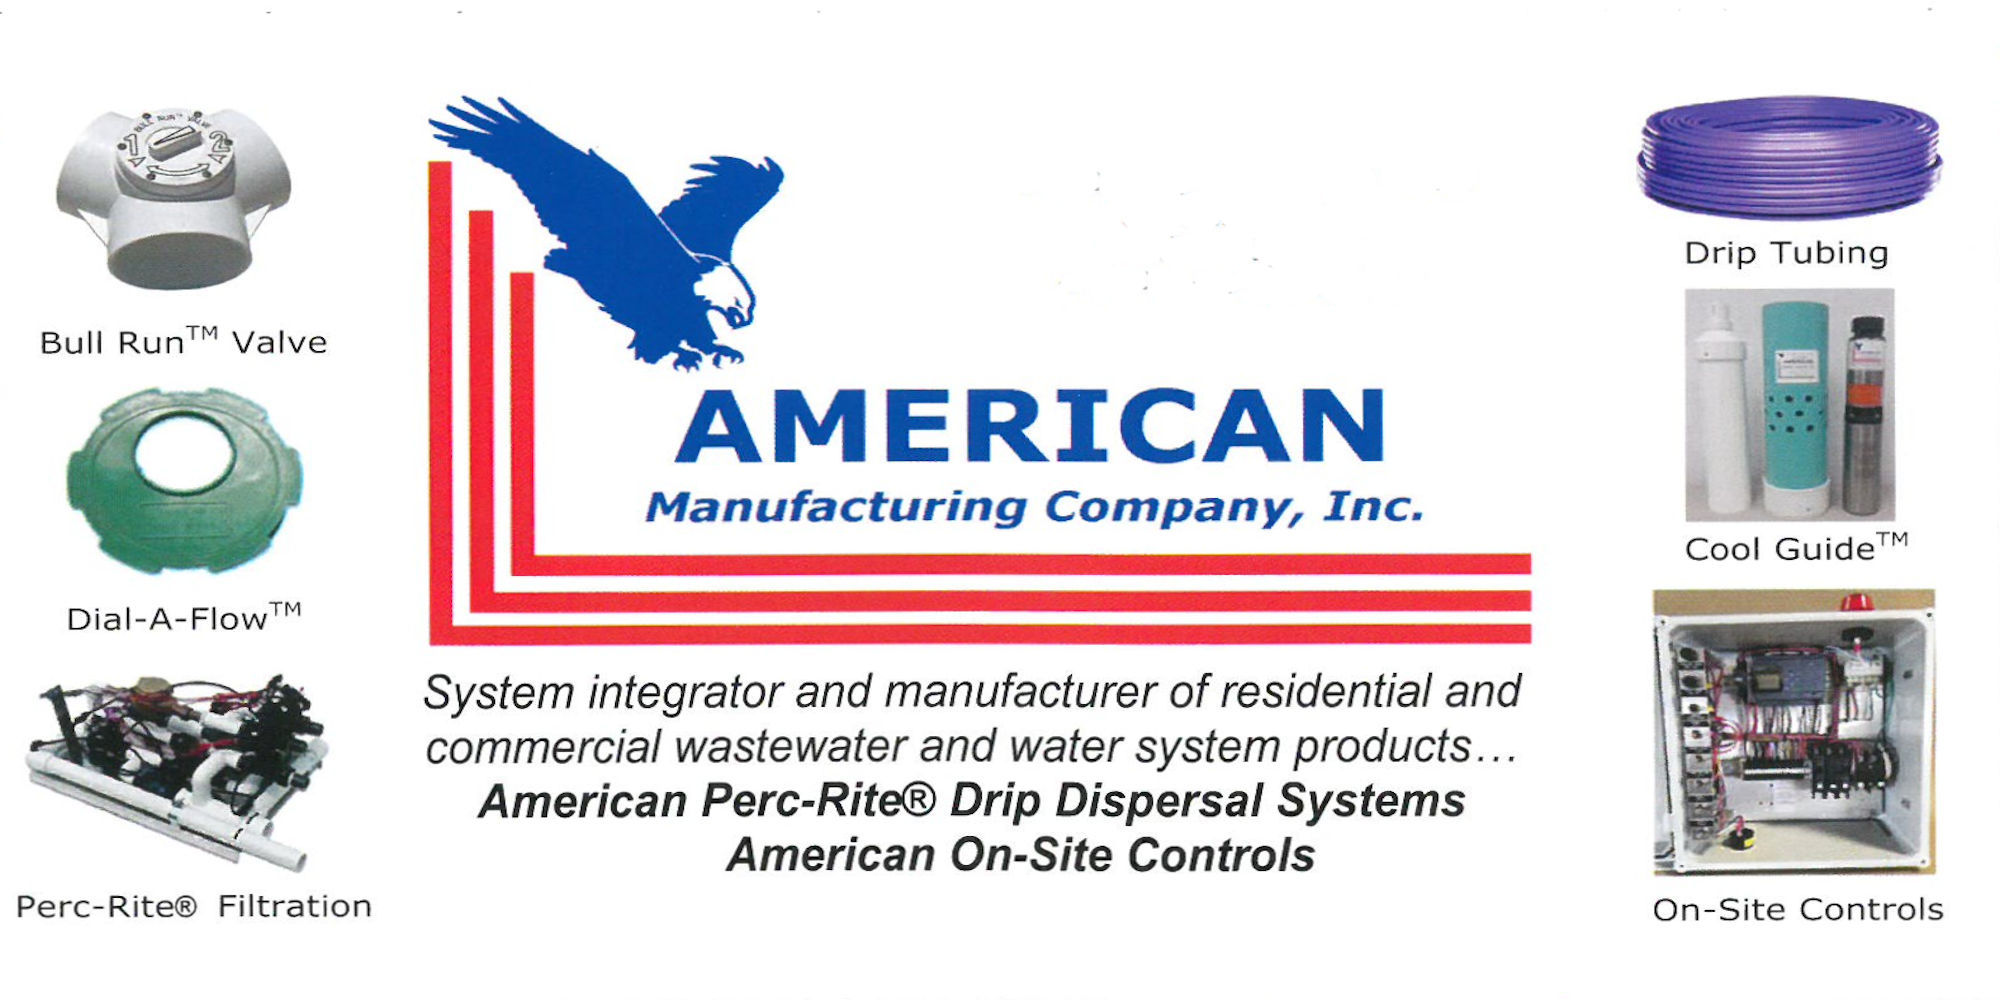 American-Manufacturing-Percrite-drip-irrigation-wastewater-effluent-dispersal-treatment